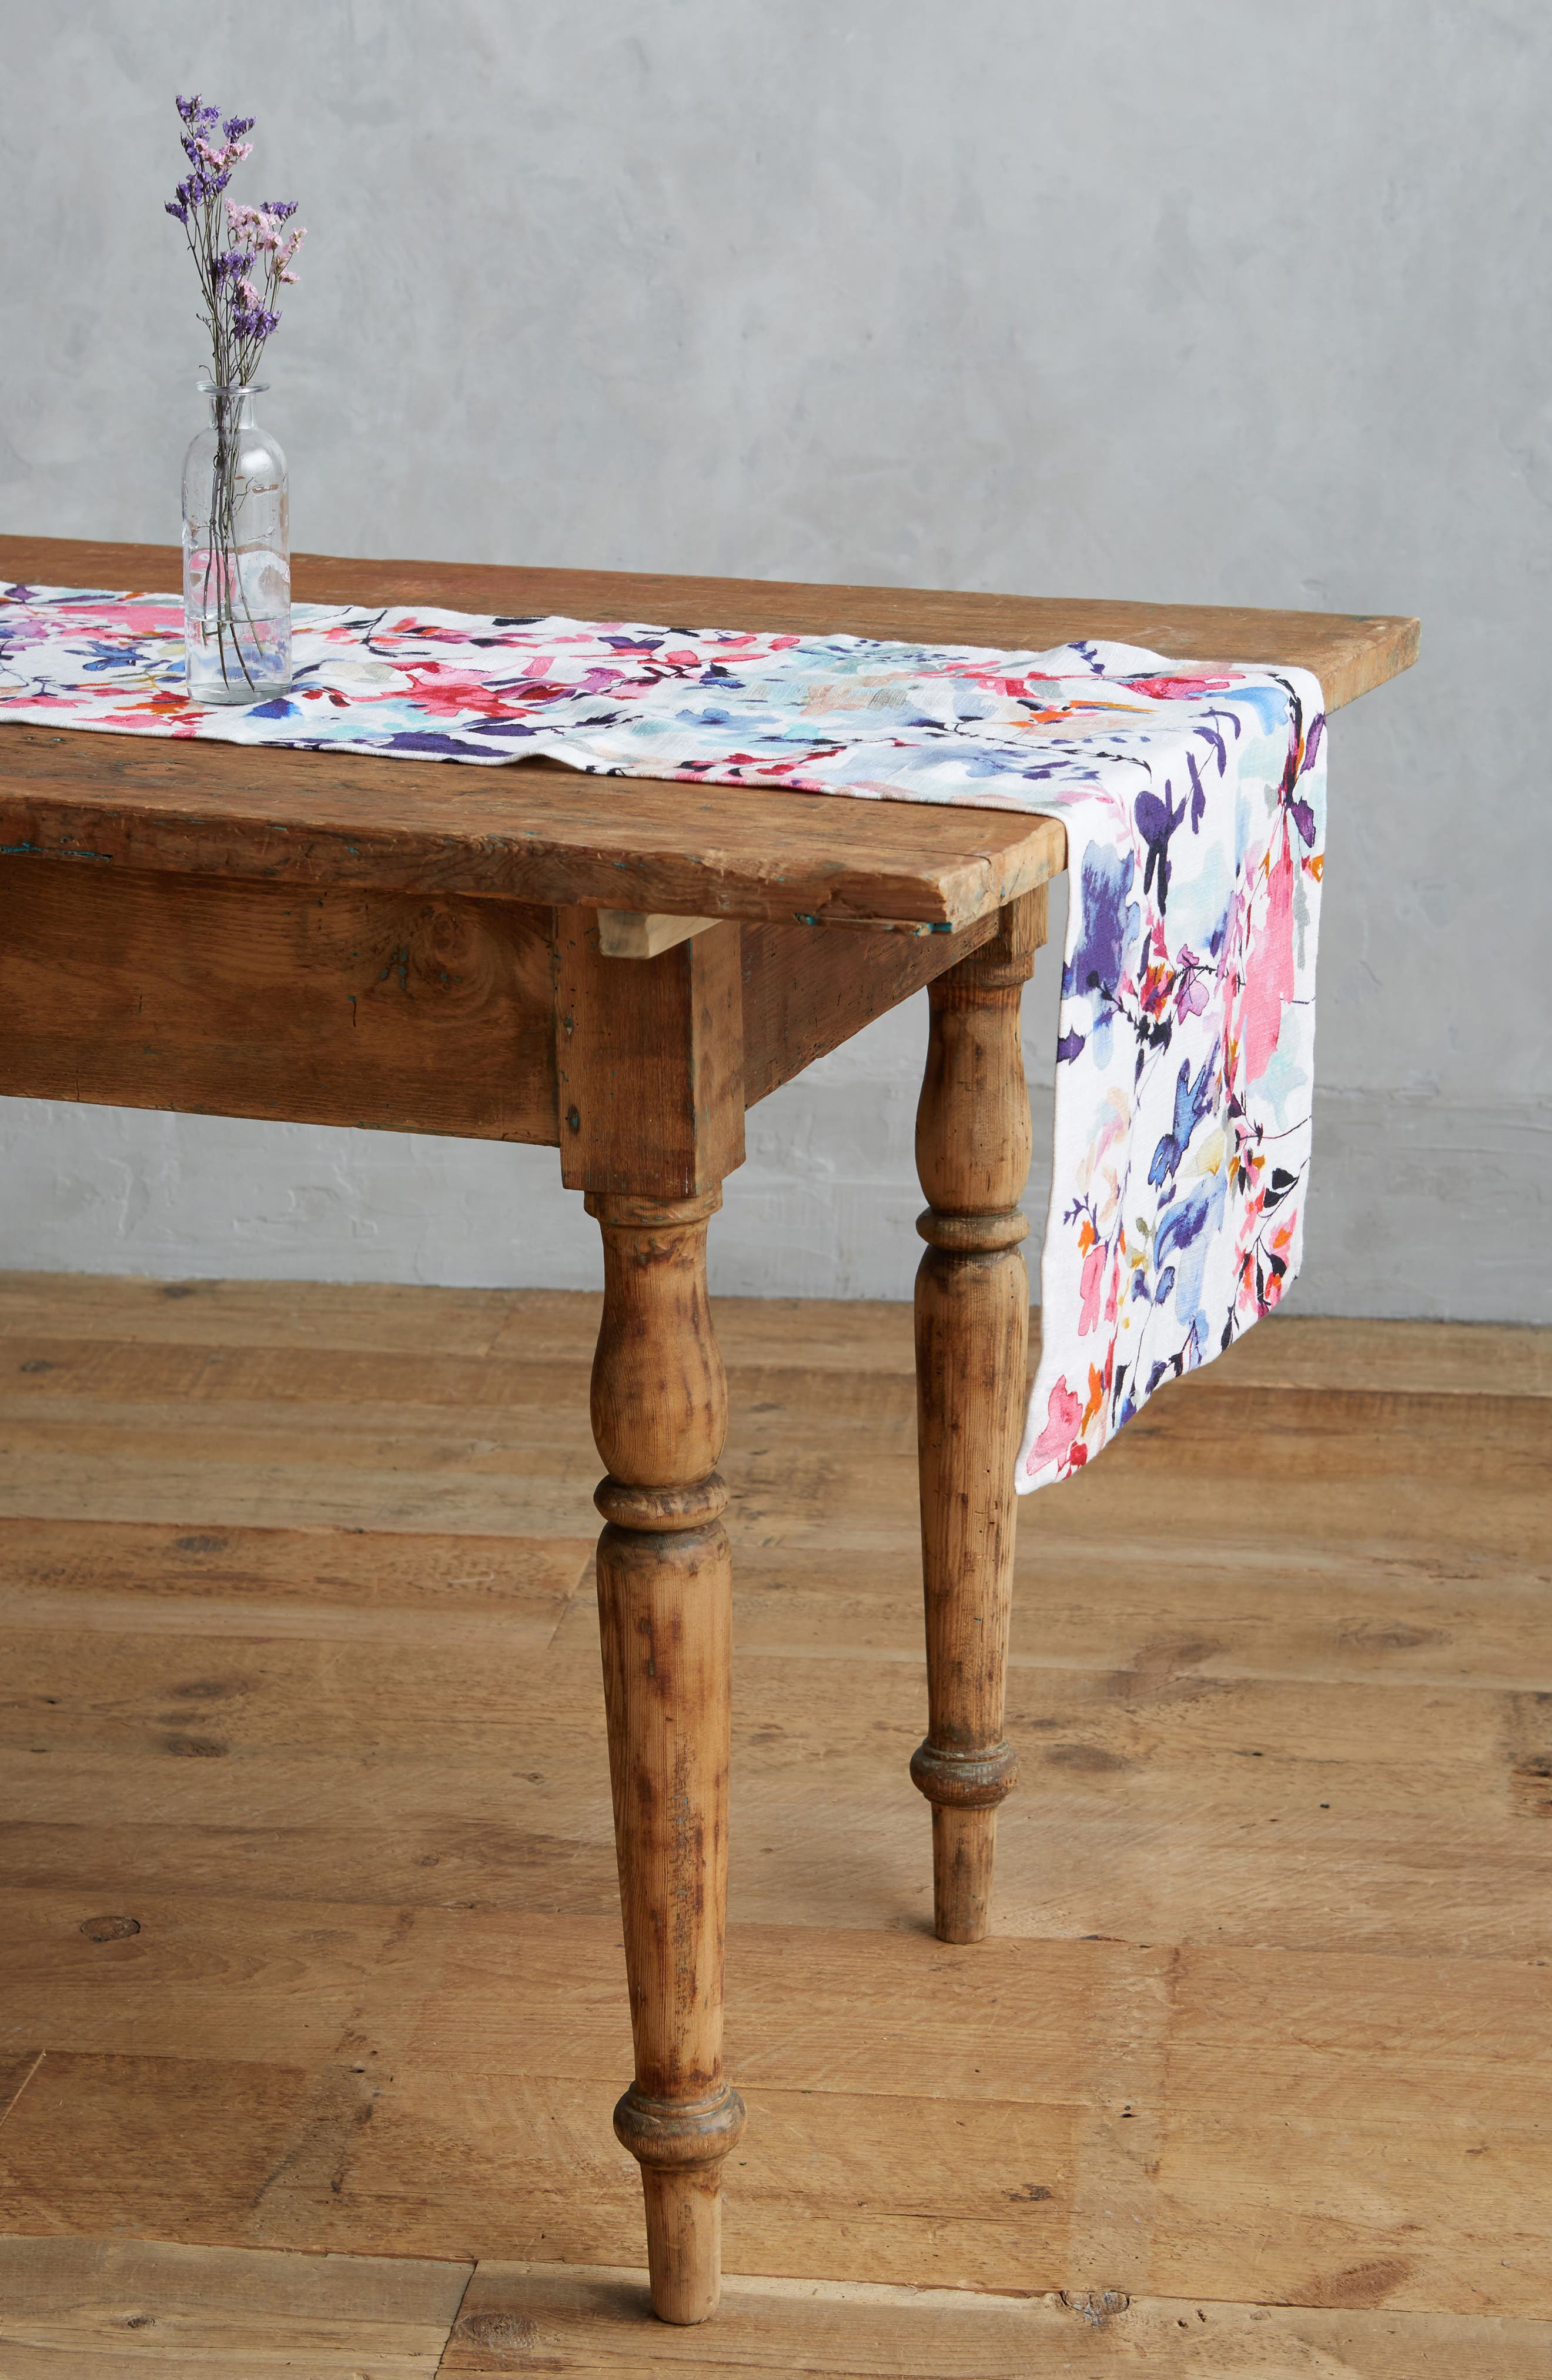 Wildflower Study Table Runner,                             Main thumbnail 1, color,                             650